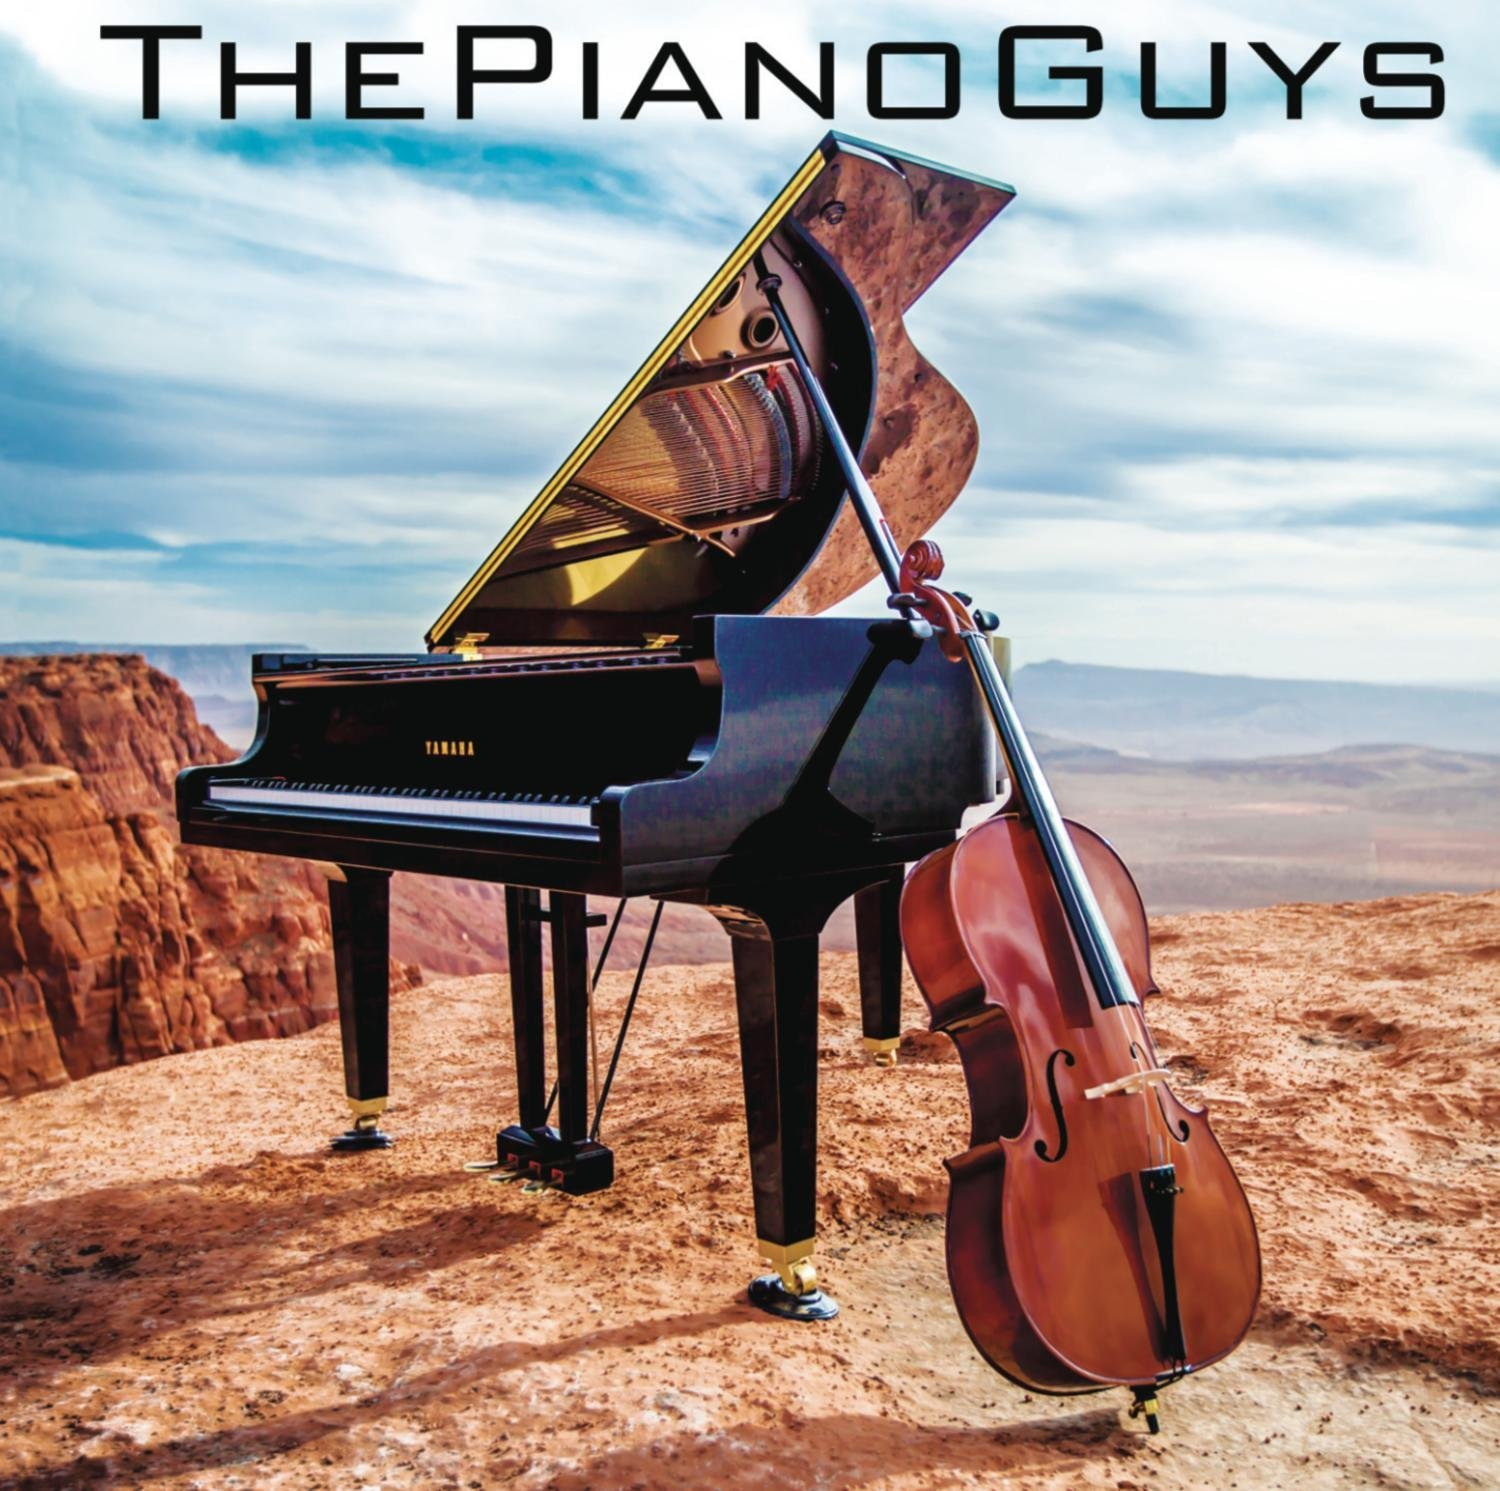 The Piano Guys Album Artwork